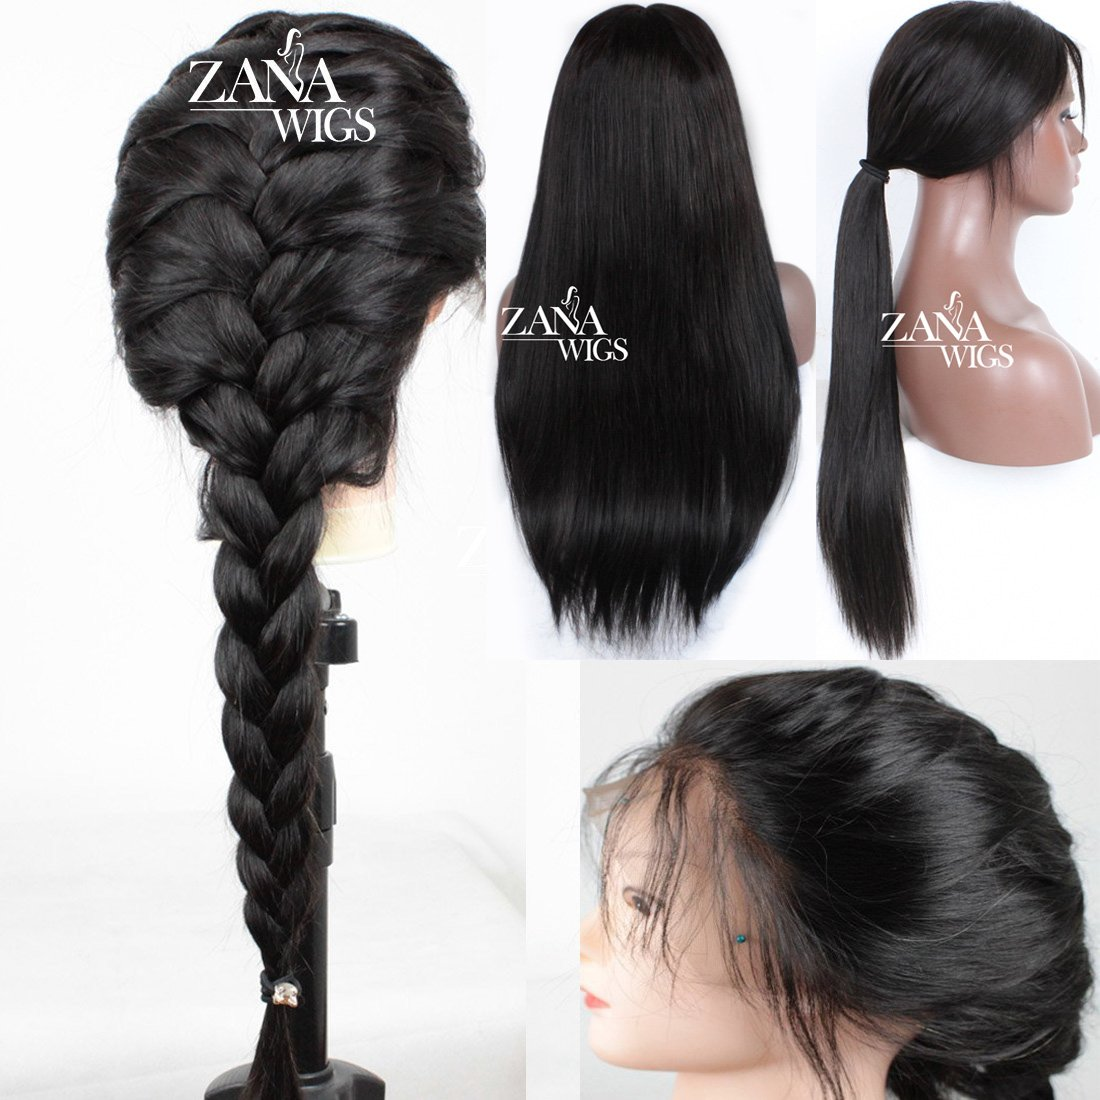 7A Grade Brazilian Virgin Glueless Human Hair Full Lace Front wigs with Baby Hair Brazilian Silky Straight Lace Front Wigs For Black Women Zana Wigs